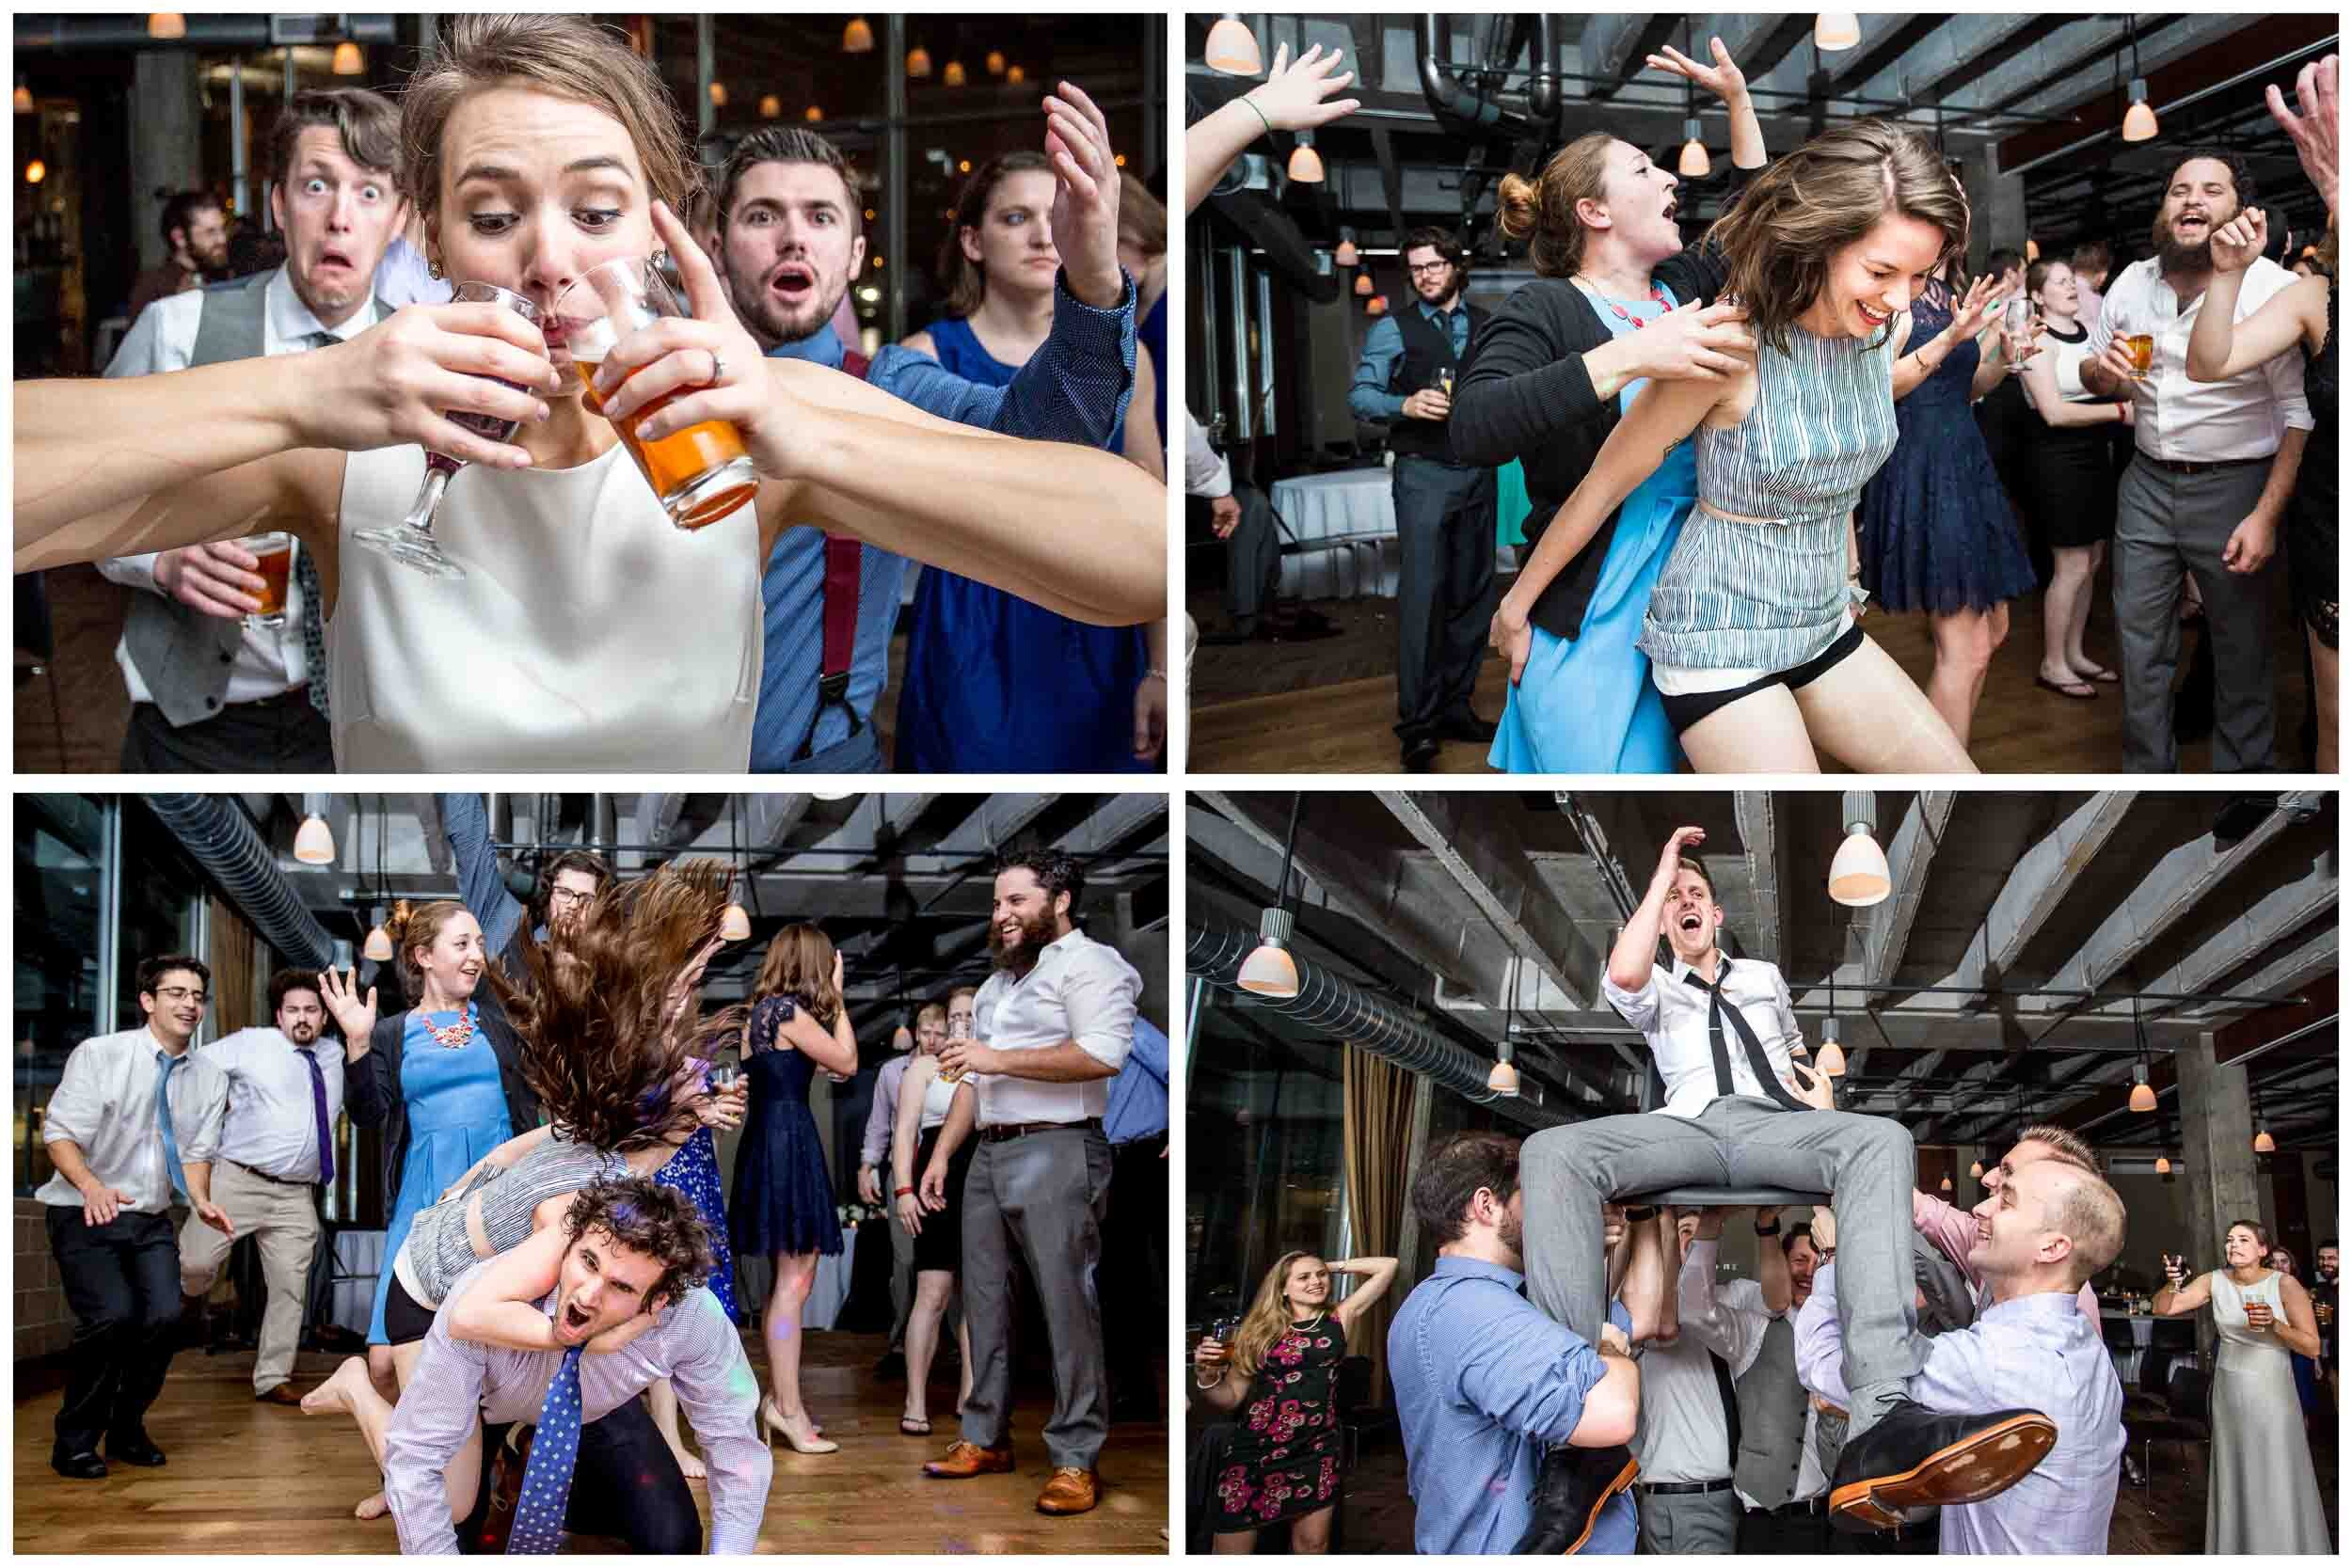 25-Boulevard-Brewery-Kansas-City-Wedding-Reception-Photo-Willows-World-Photo.jpg